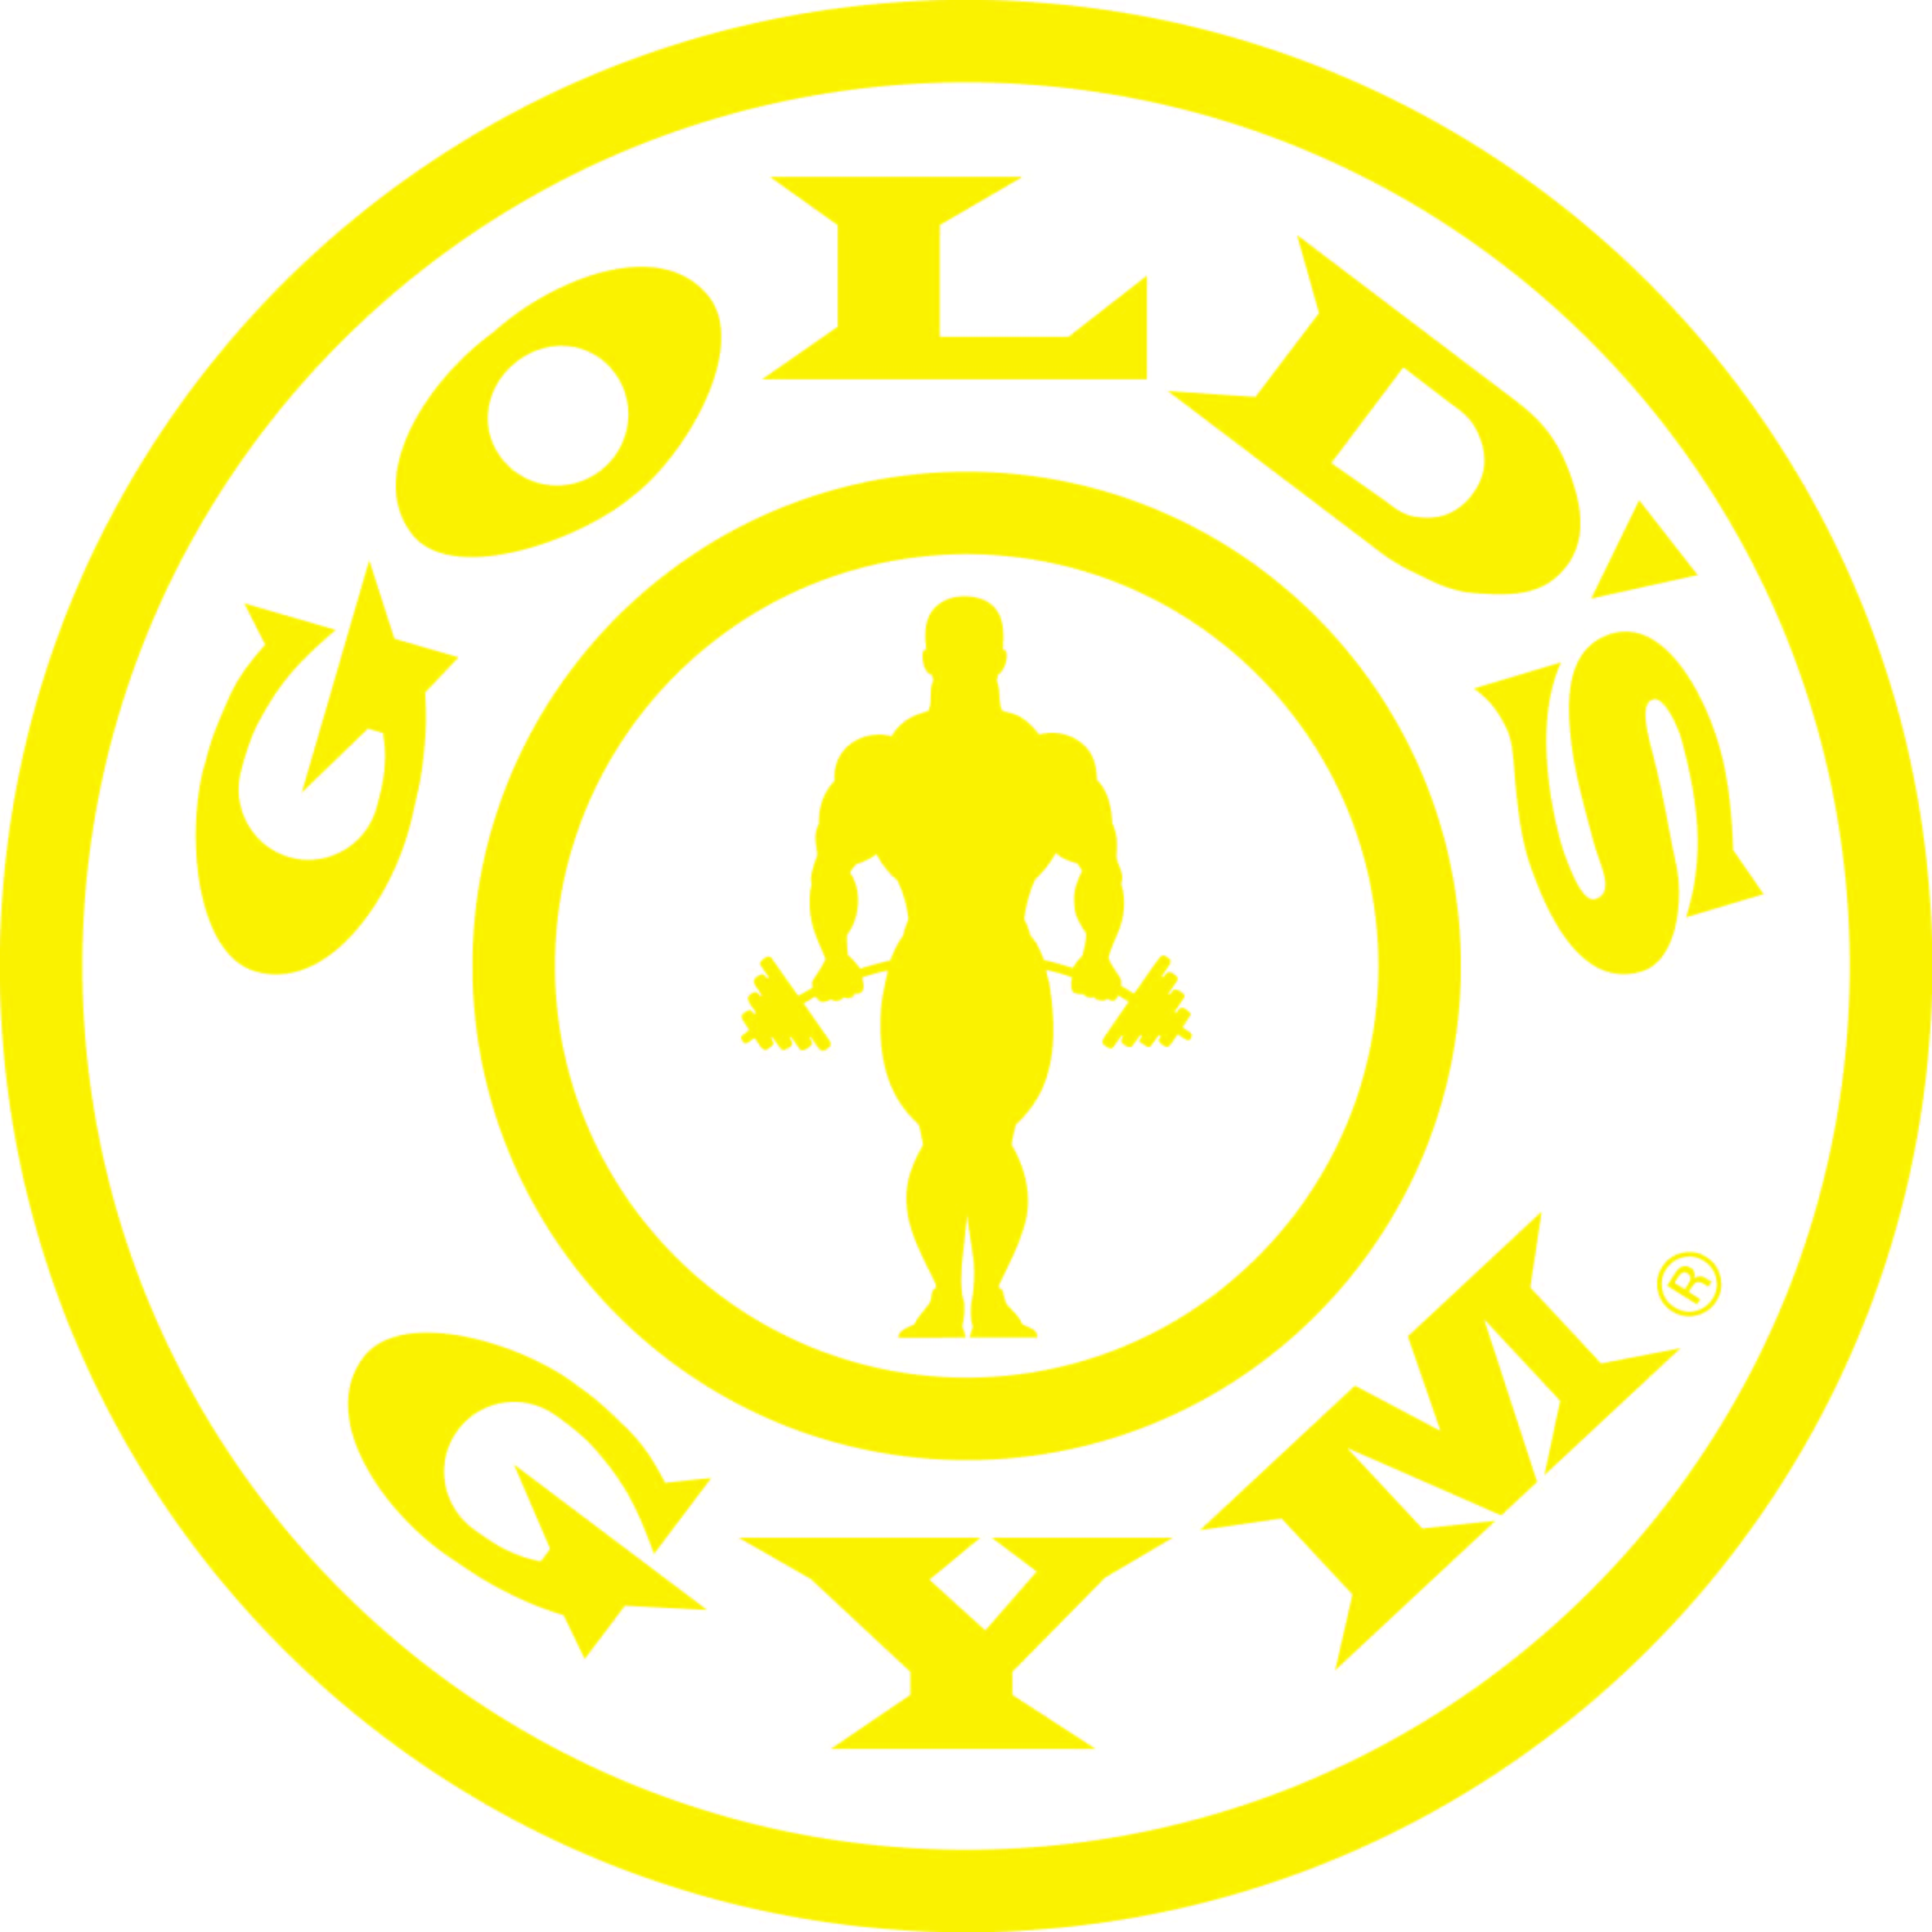 join golds gym logo - HD3941×3940